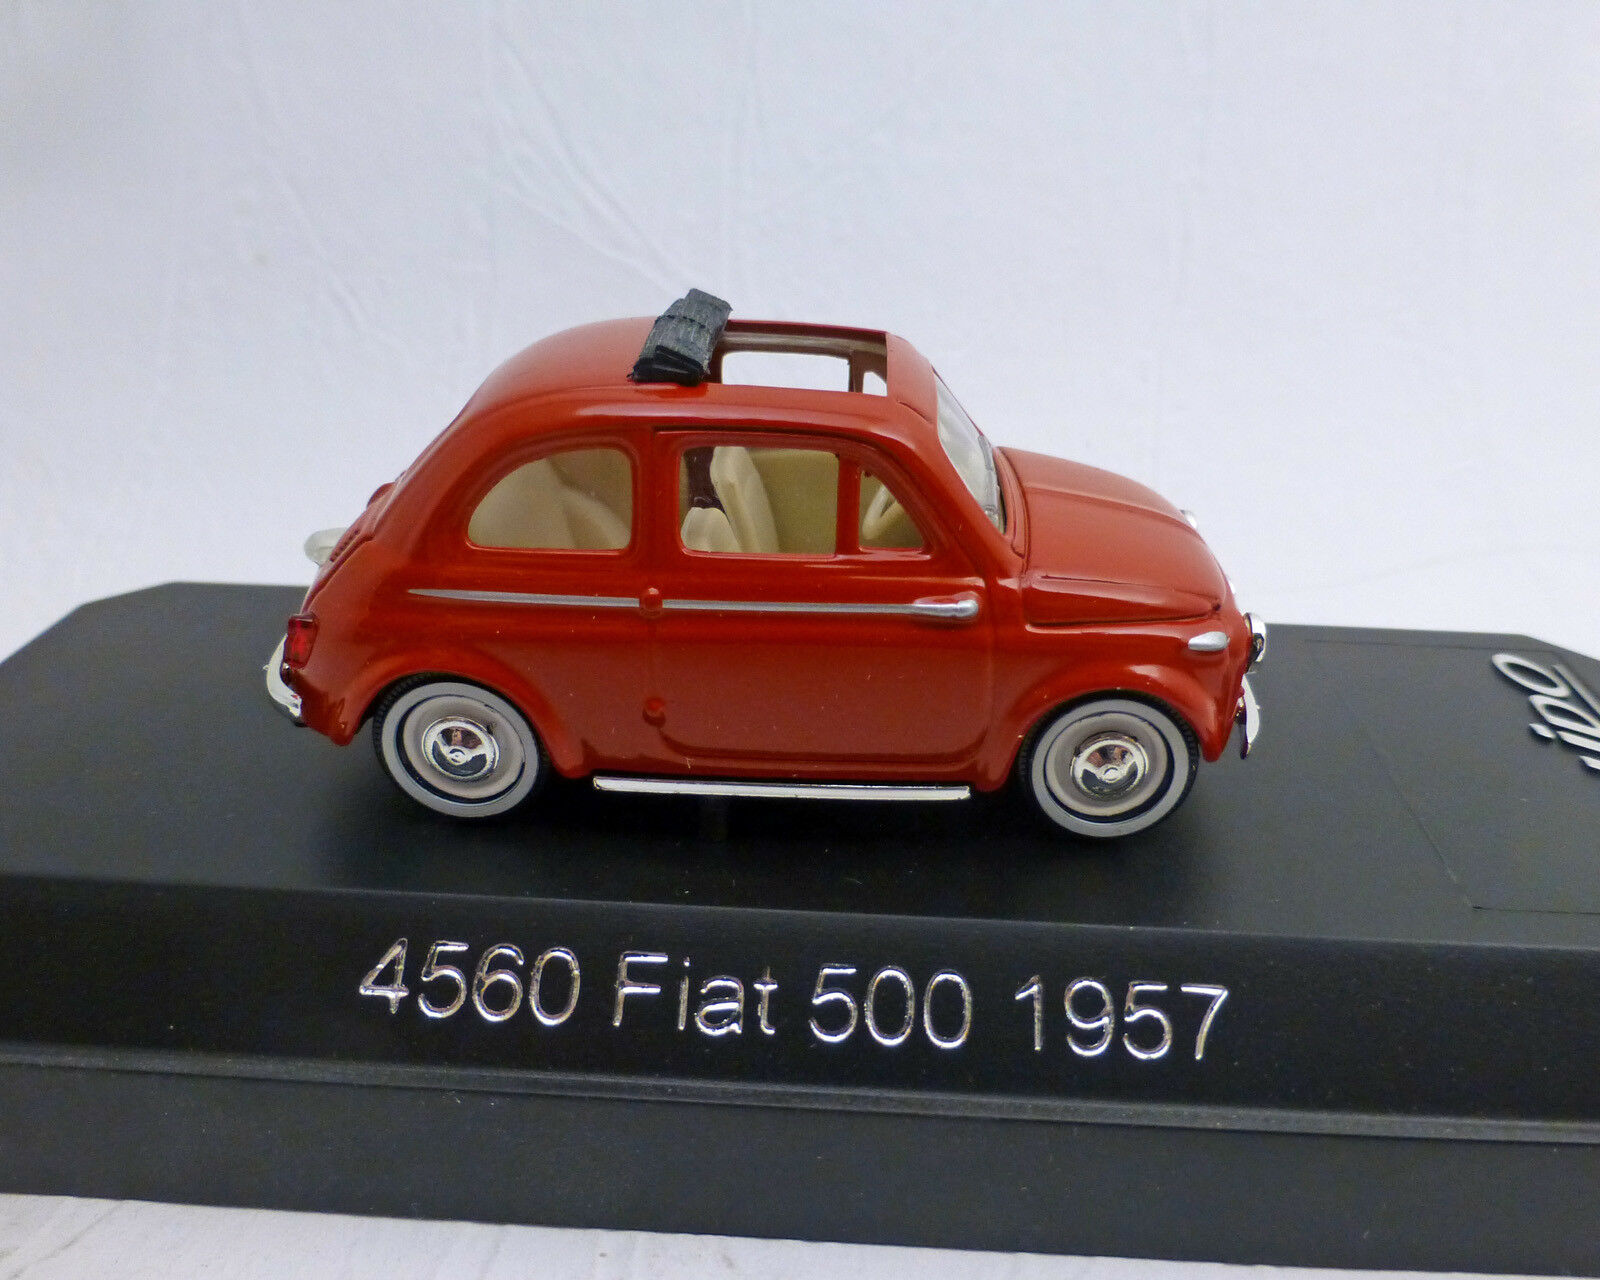 Fiat 500 ,1957, red, 1 43, SOLIDO